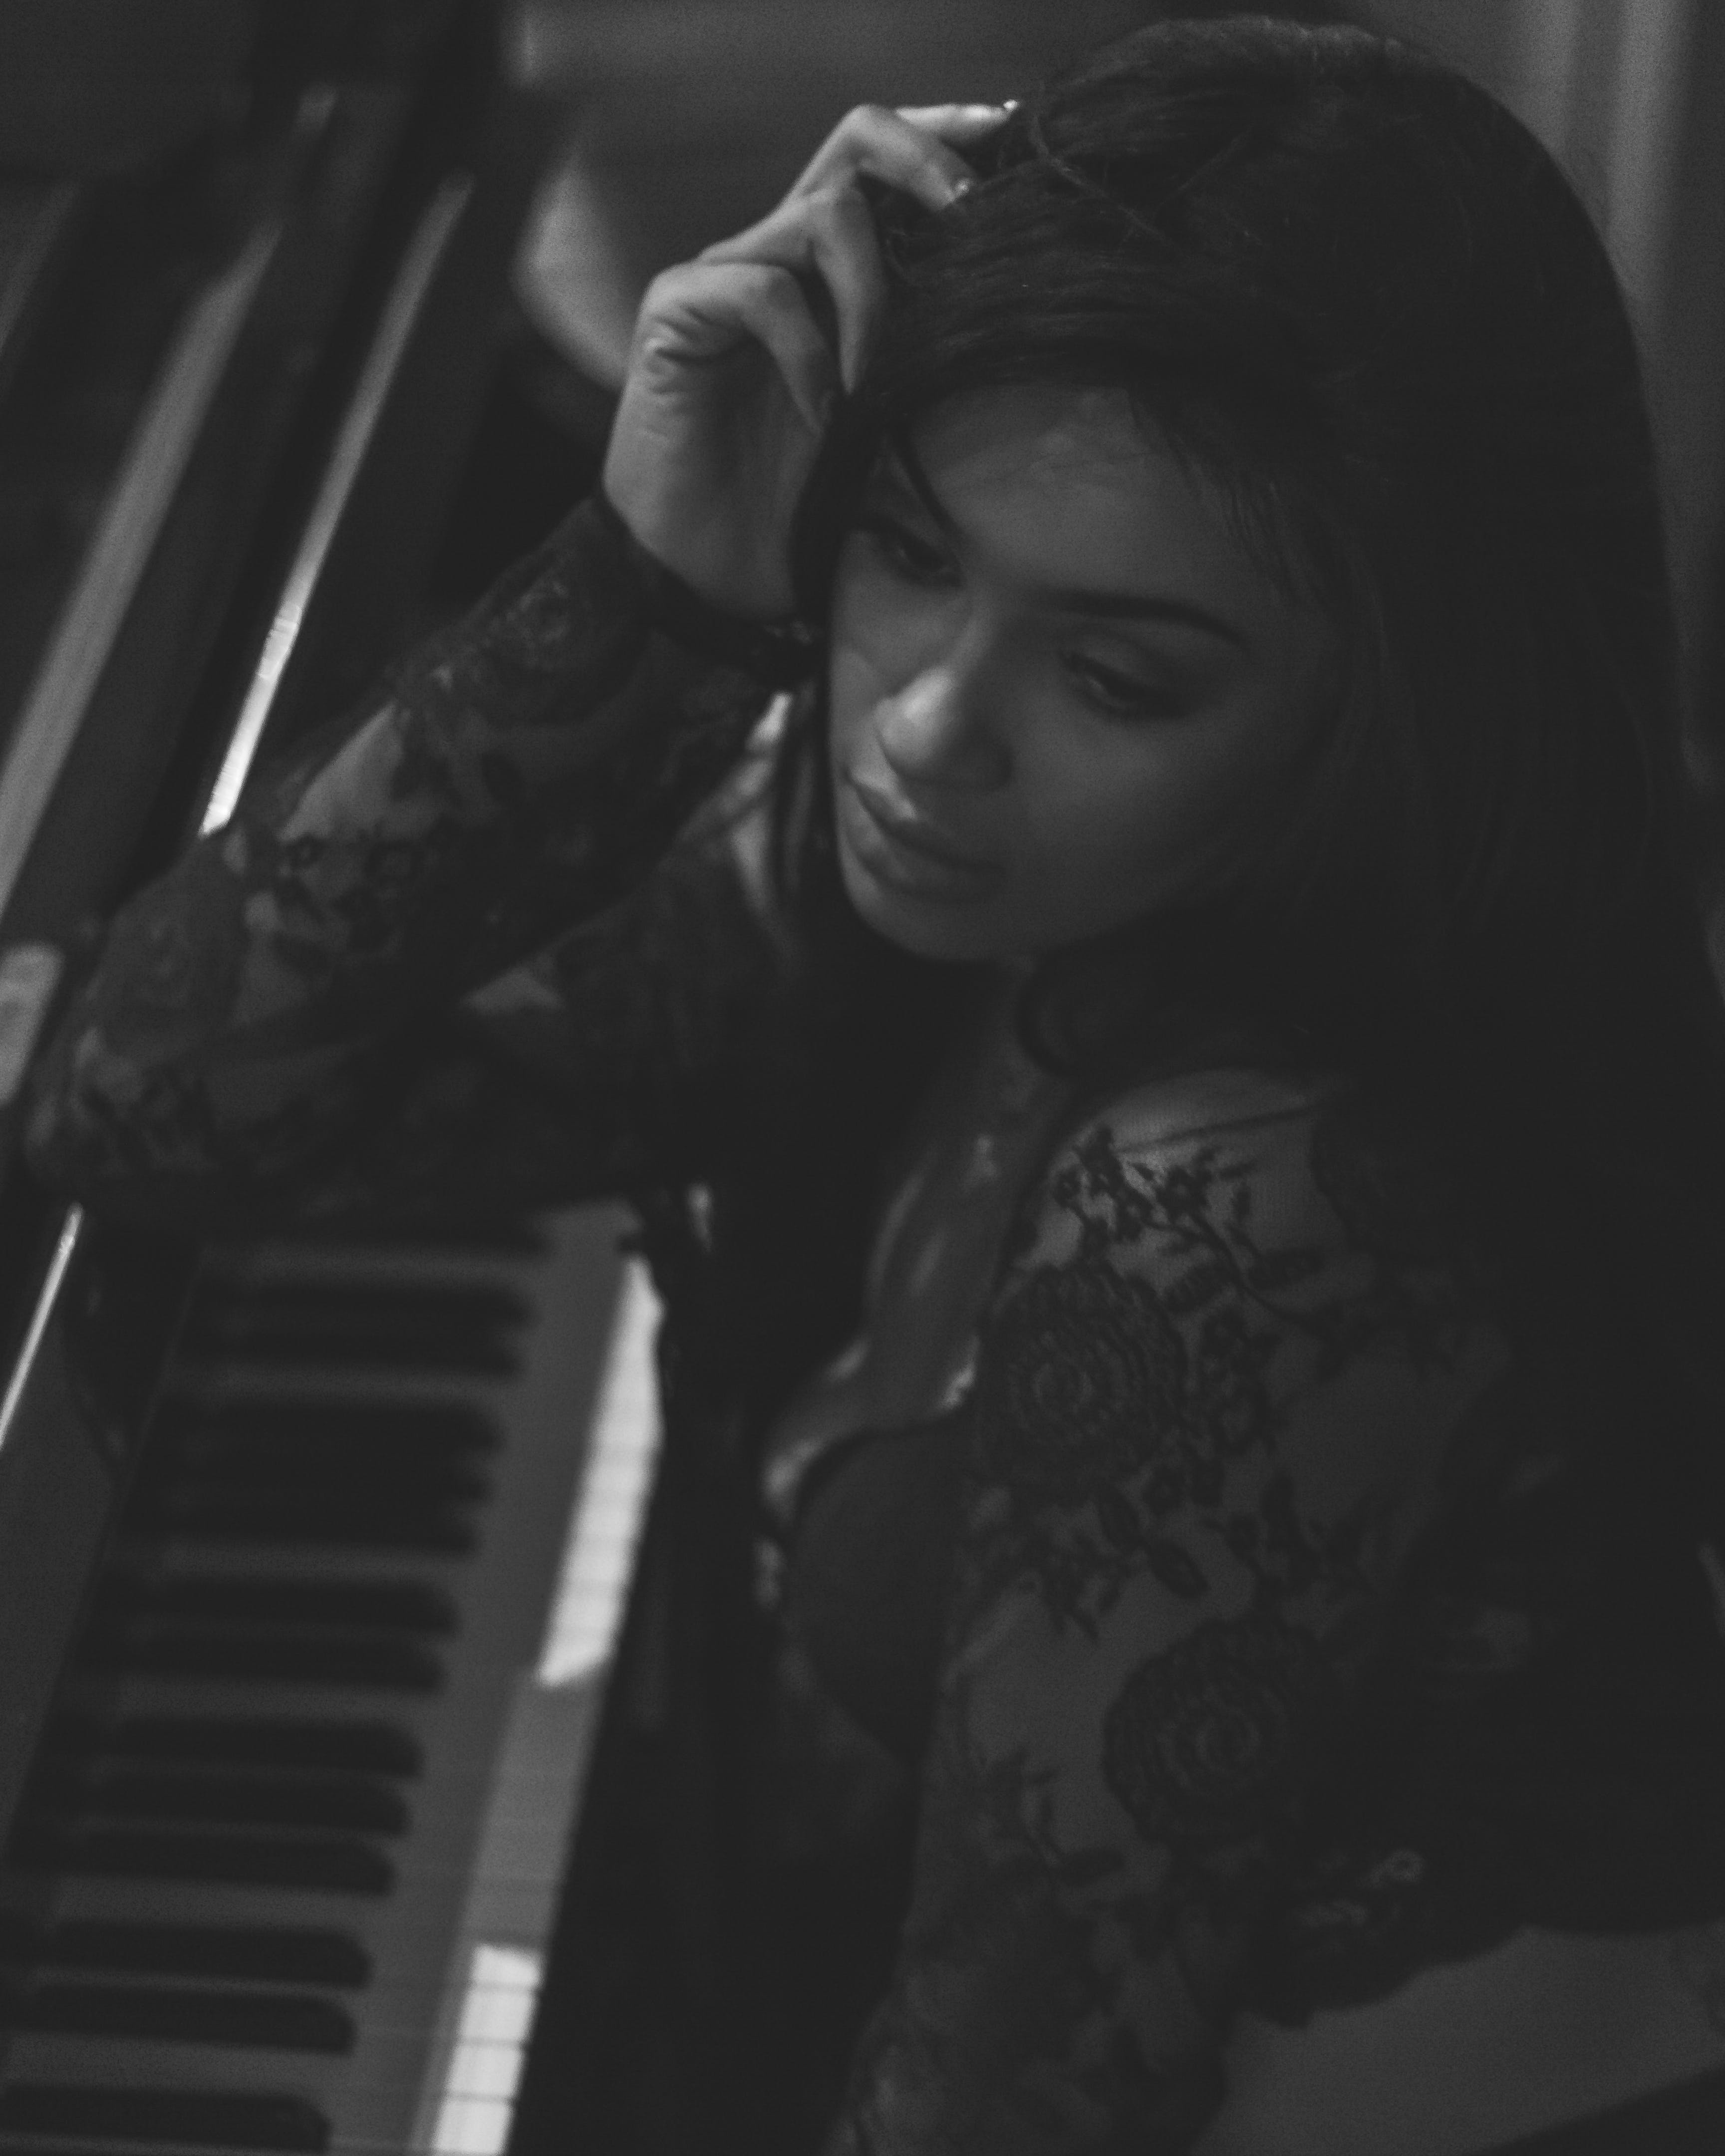 Free stock photo of black, black and white, female model, piano